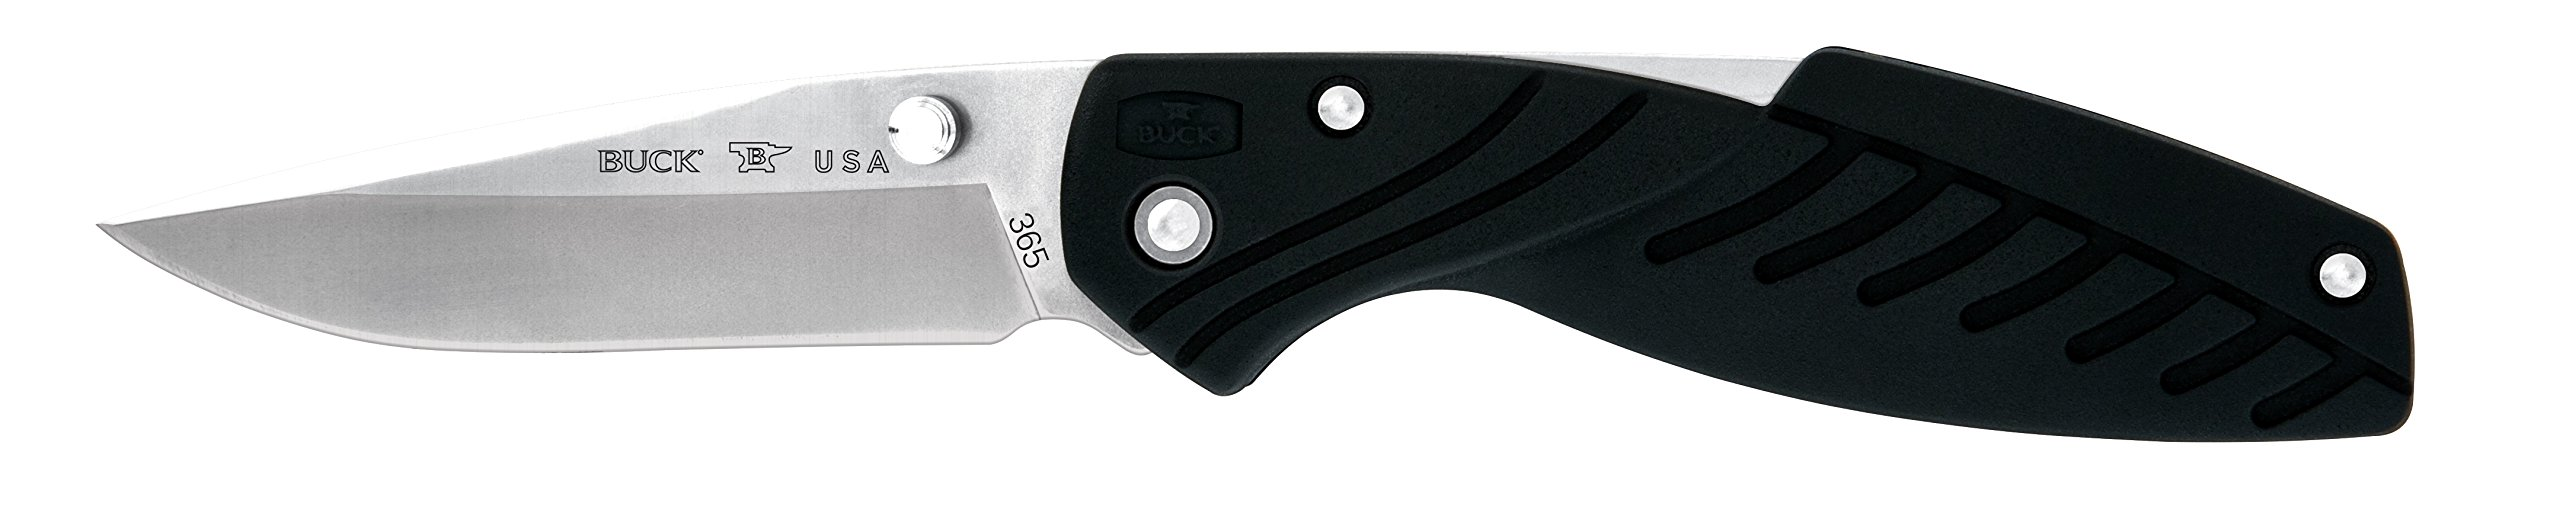 Buck Knives 365 Rival II Folding Knife with Removable Clip